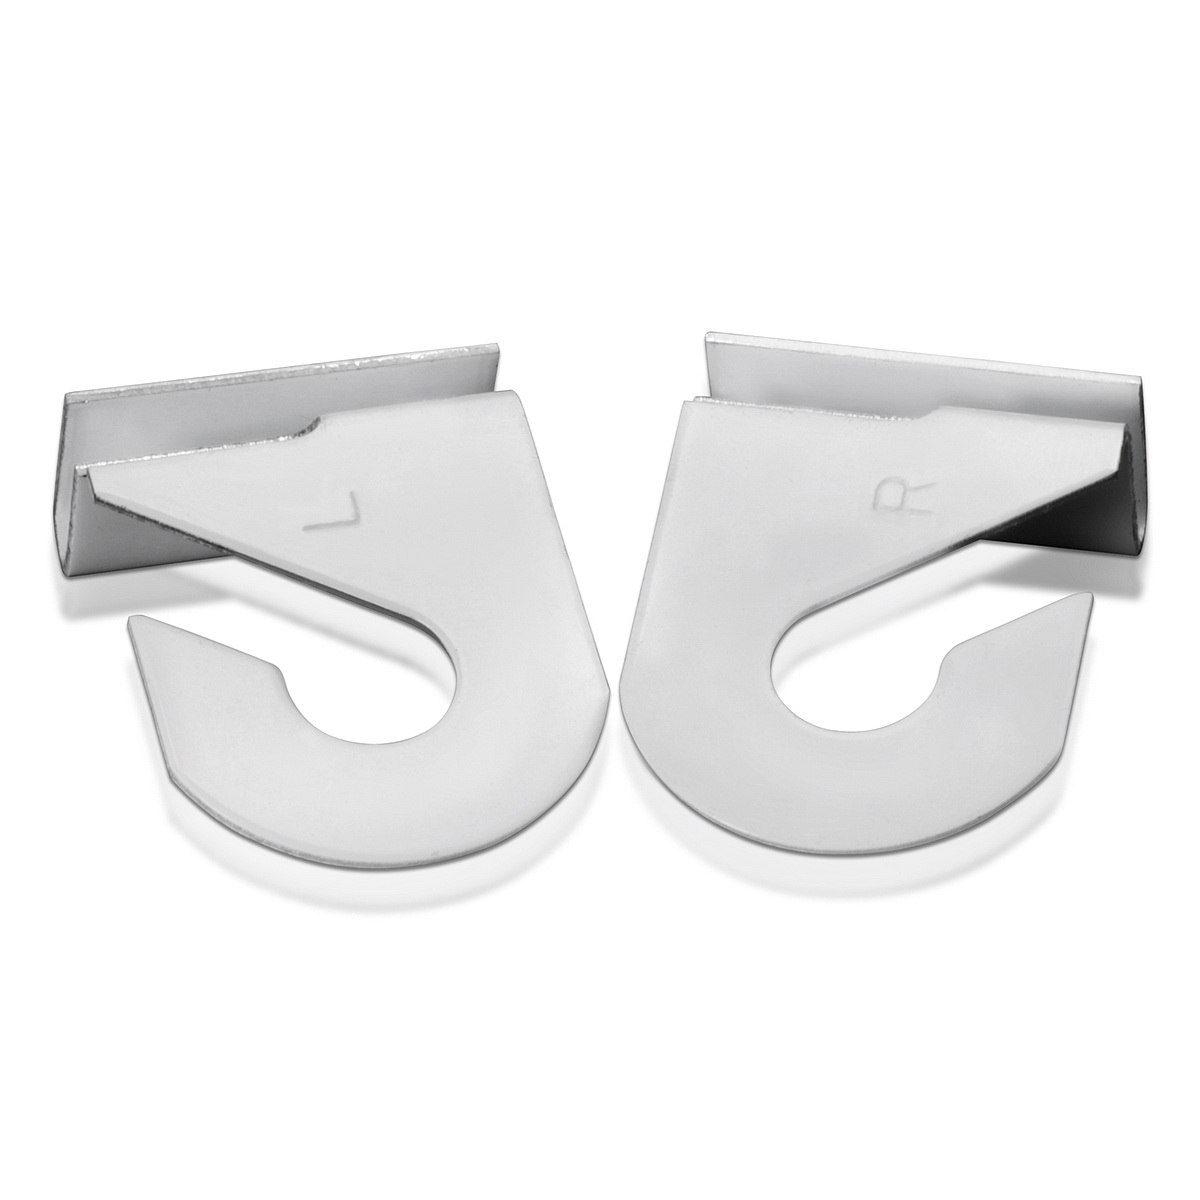 Metal T-Bar Slide Clamp for Drop Ceilings